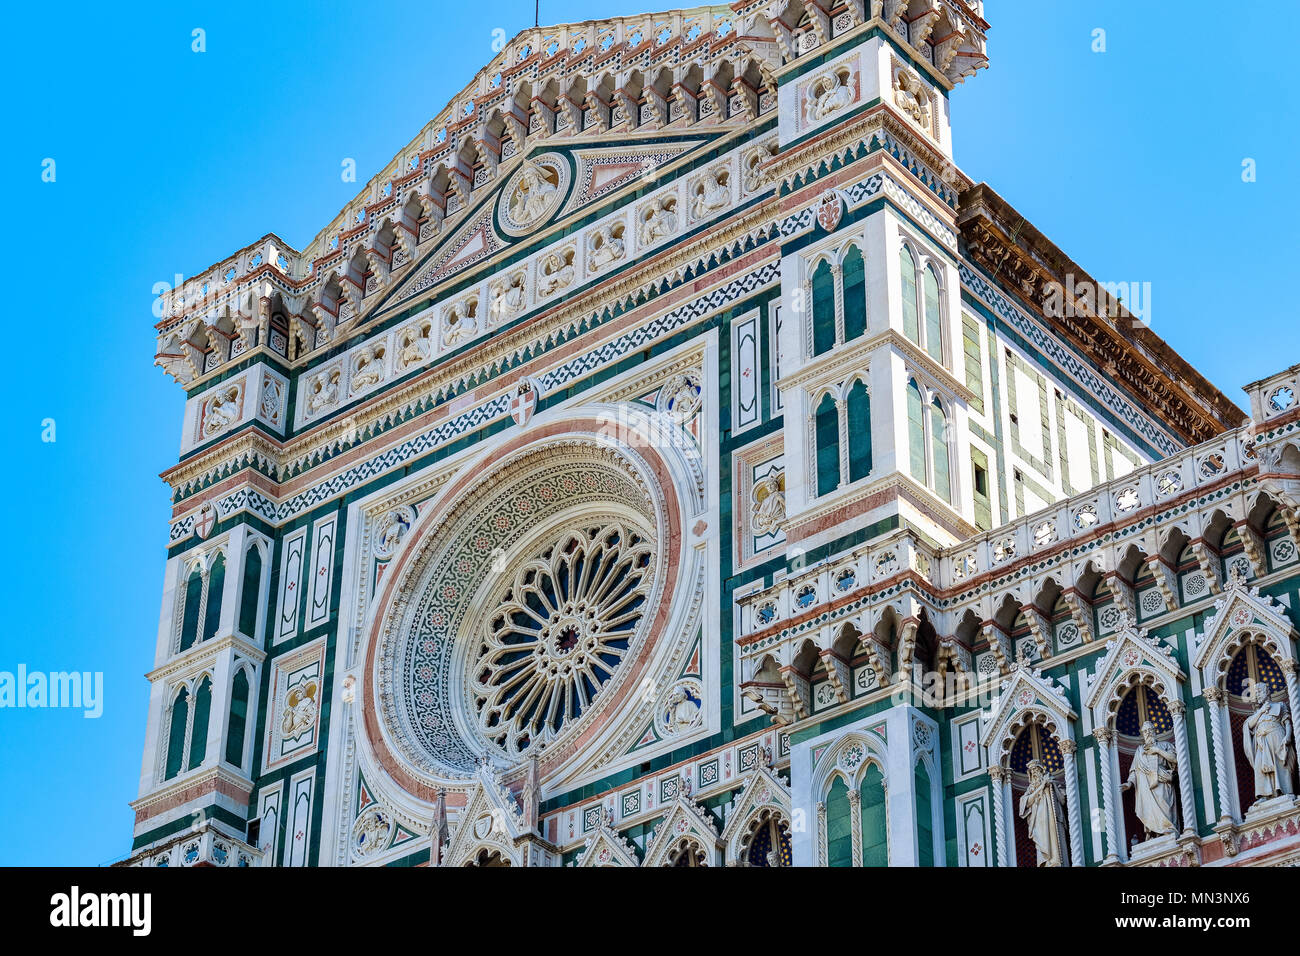 Facade of the Cattedrale di Santa Maria del Fiore (Cathedral of Saint Mary of the Flower) in Florence, Italy against a cloudless sky - Stock Image